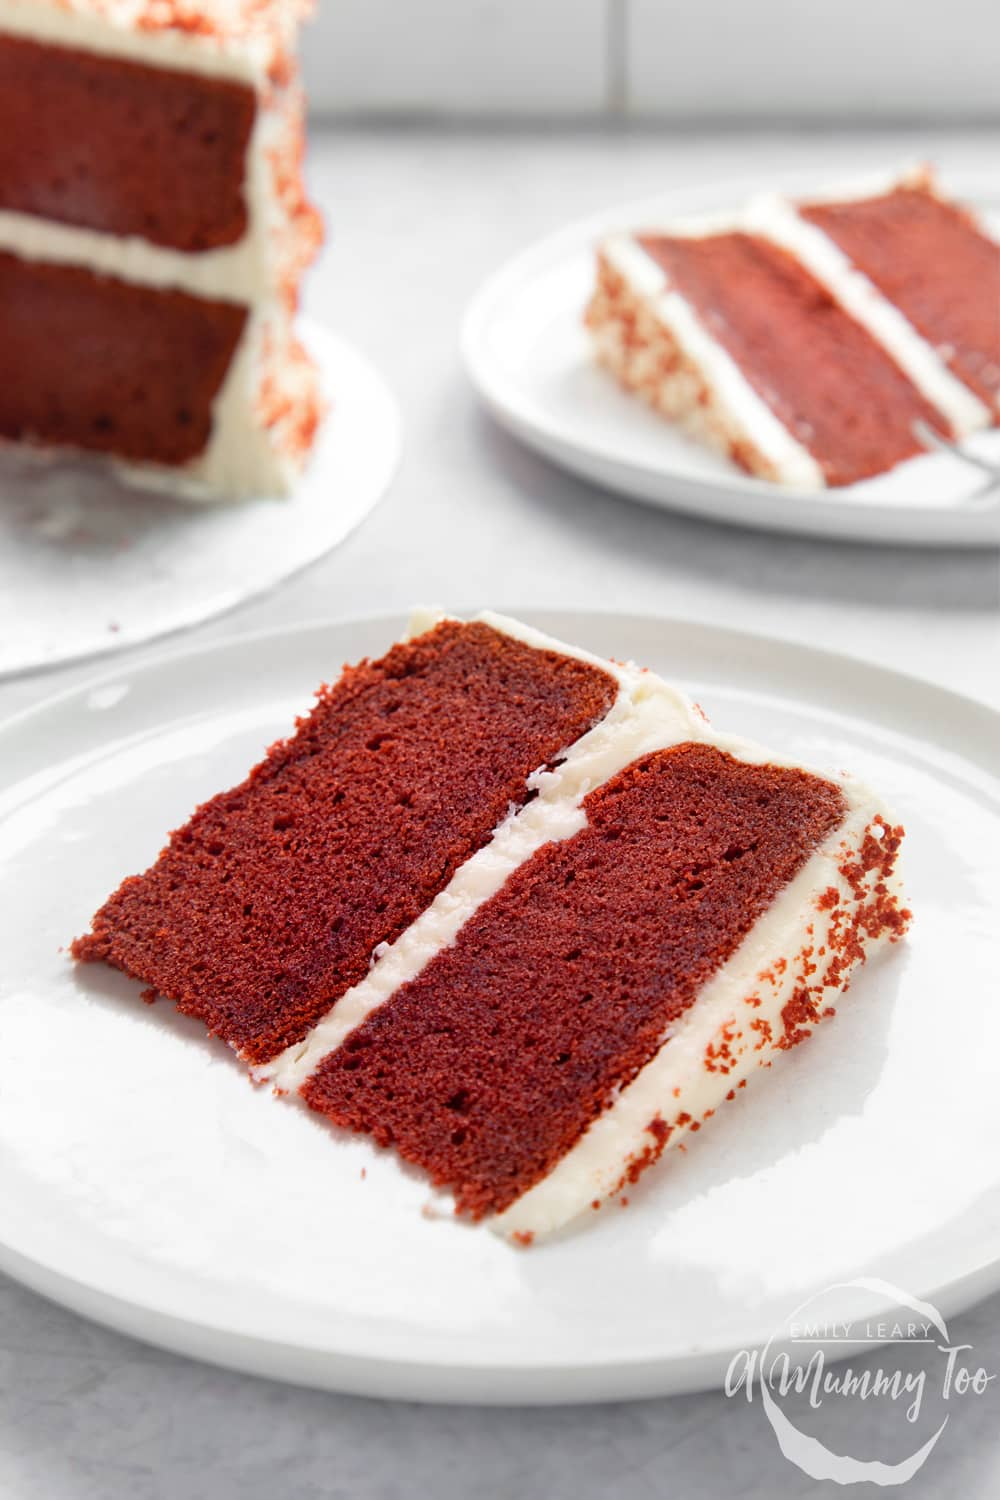 A slice of filled red velvet cake on a white plate. More cake is shown in the background.